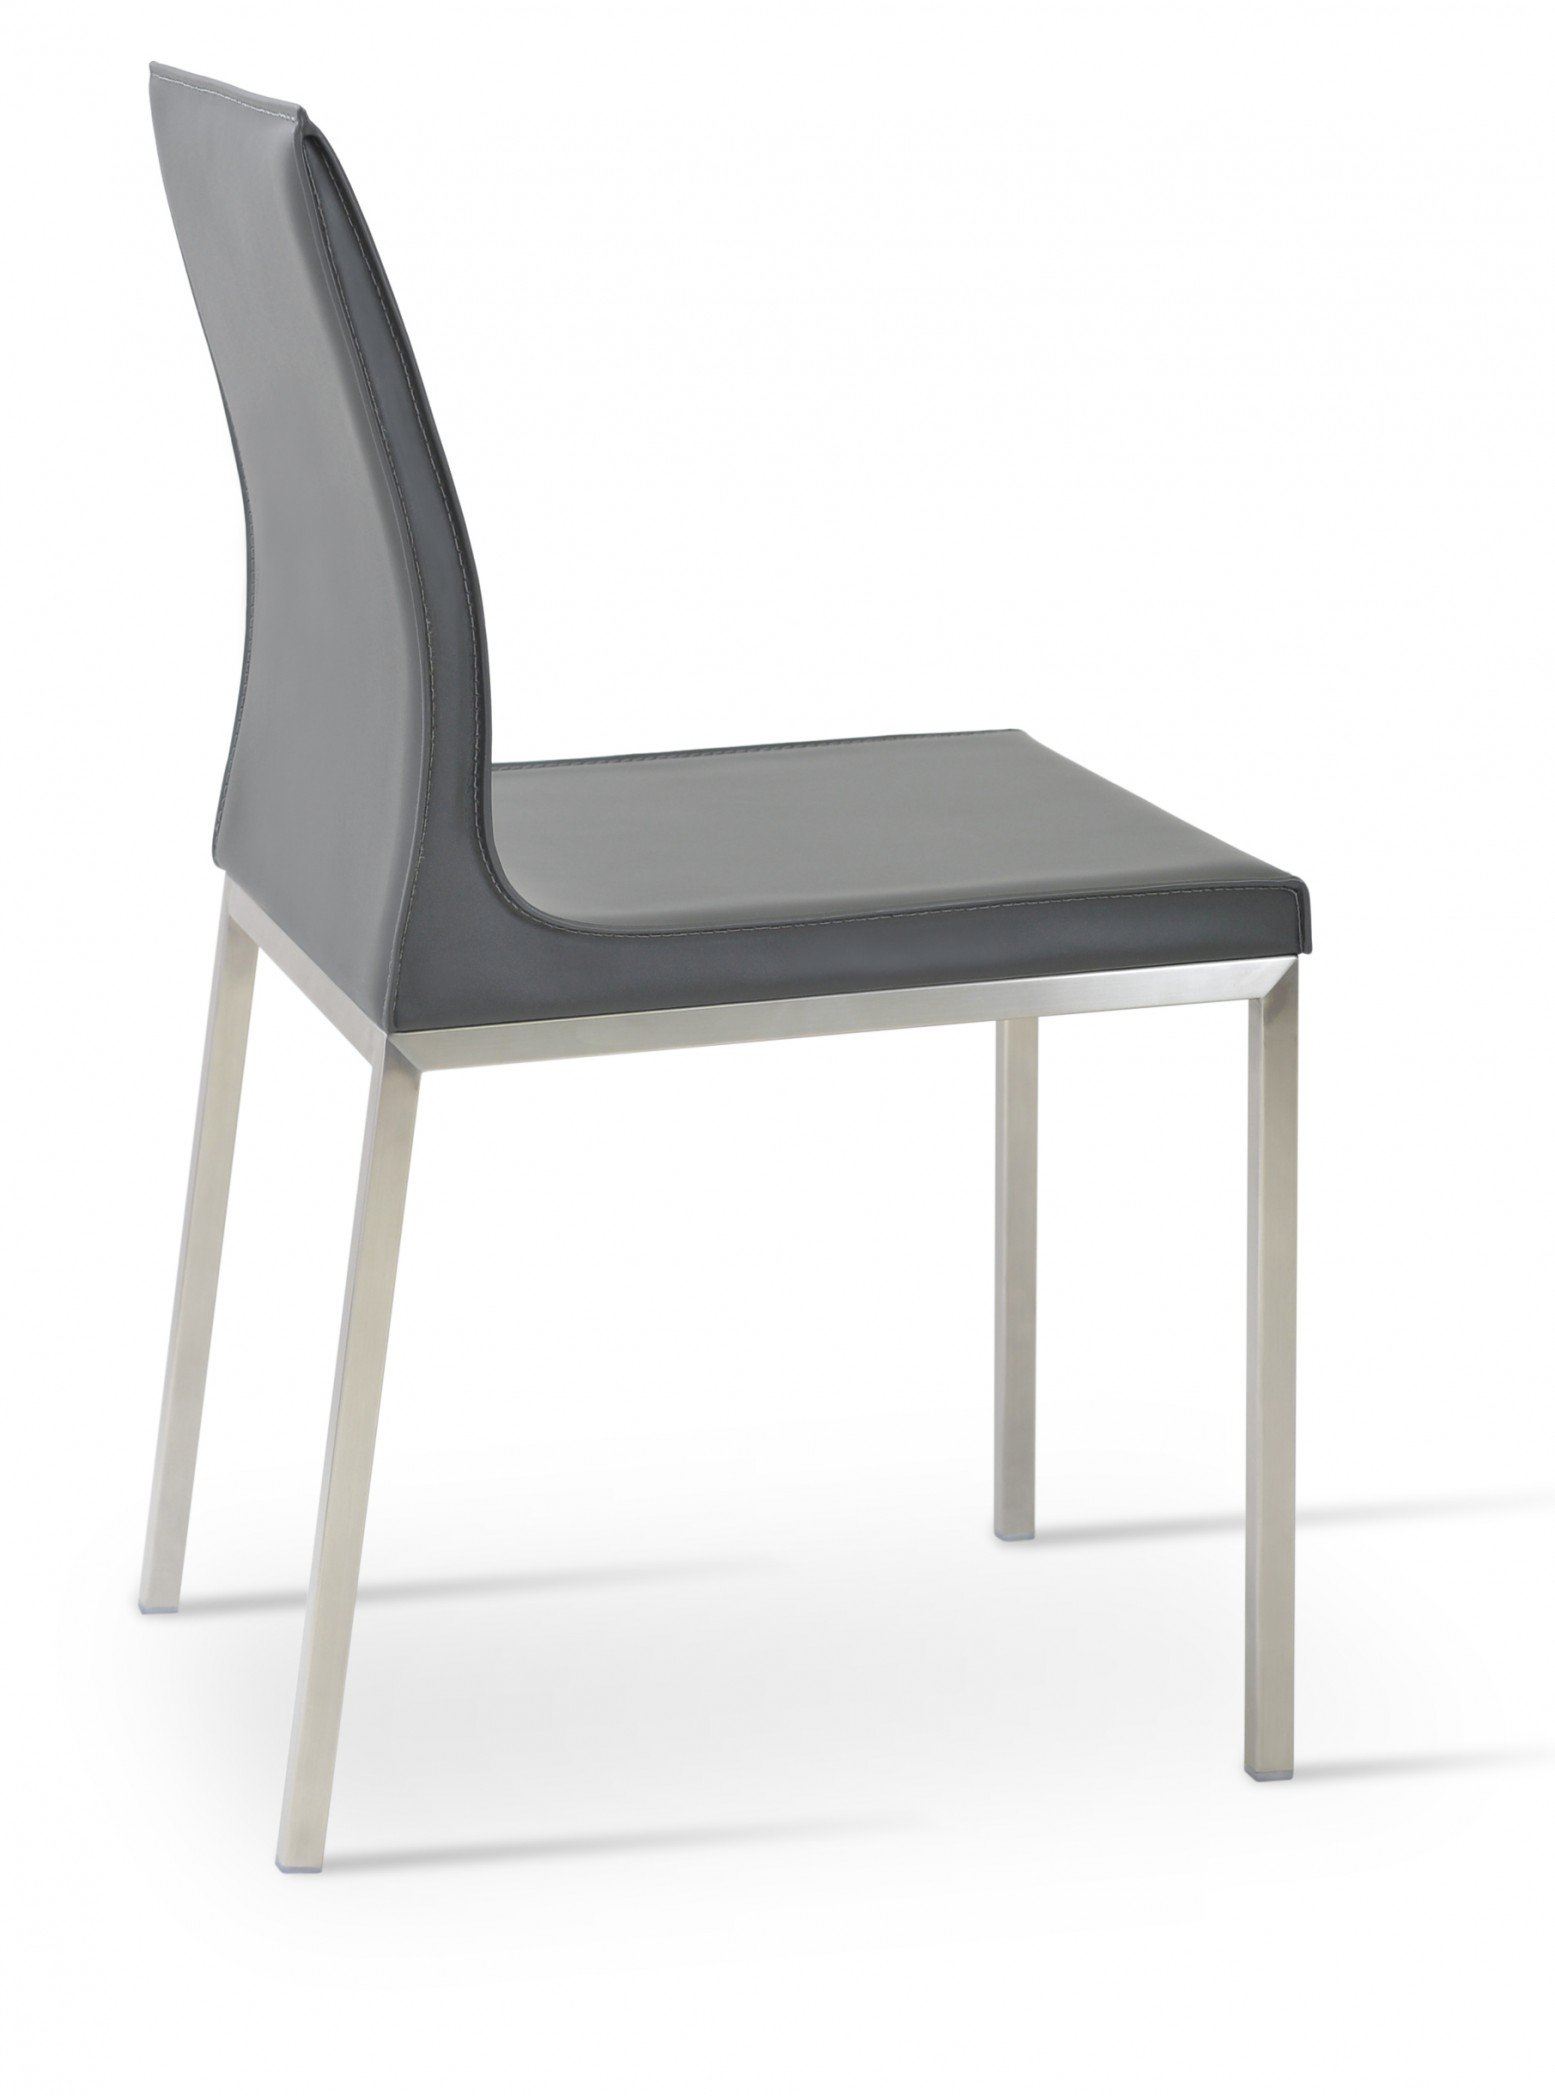 Polo Chrome Dining Chair Stainless Steel Dark Grey Bonded Leather By Sohoconcept Furniture